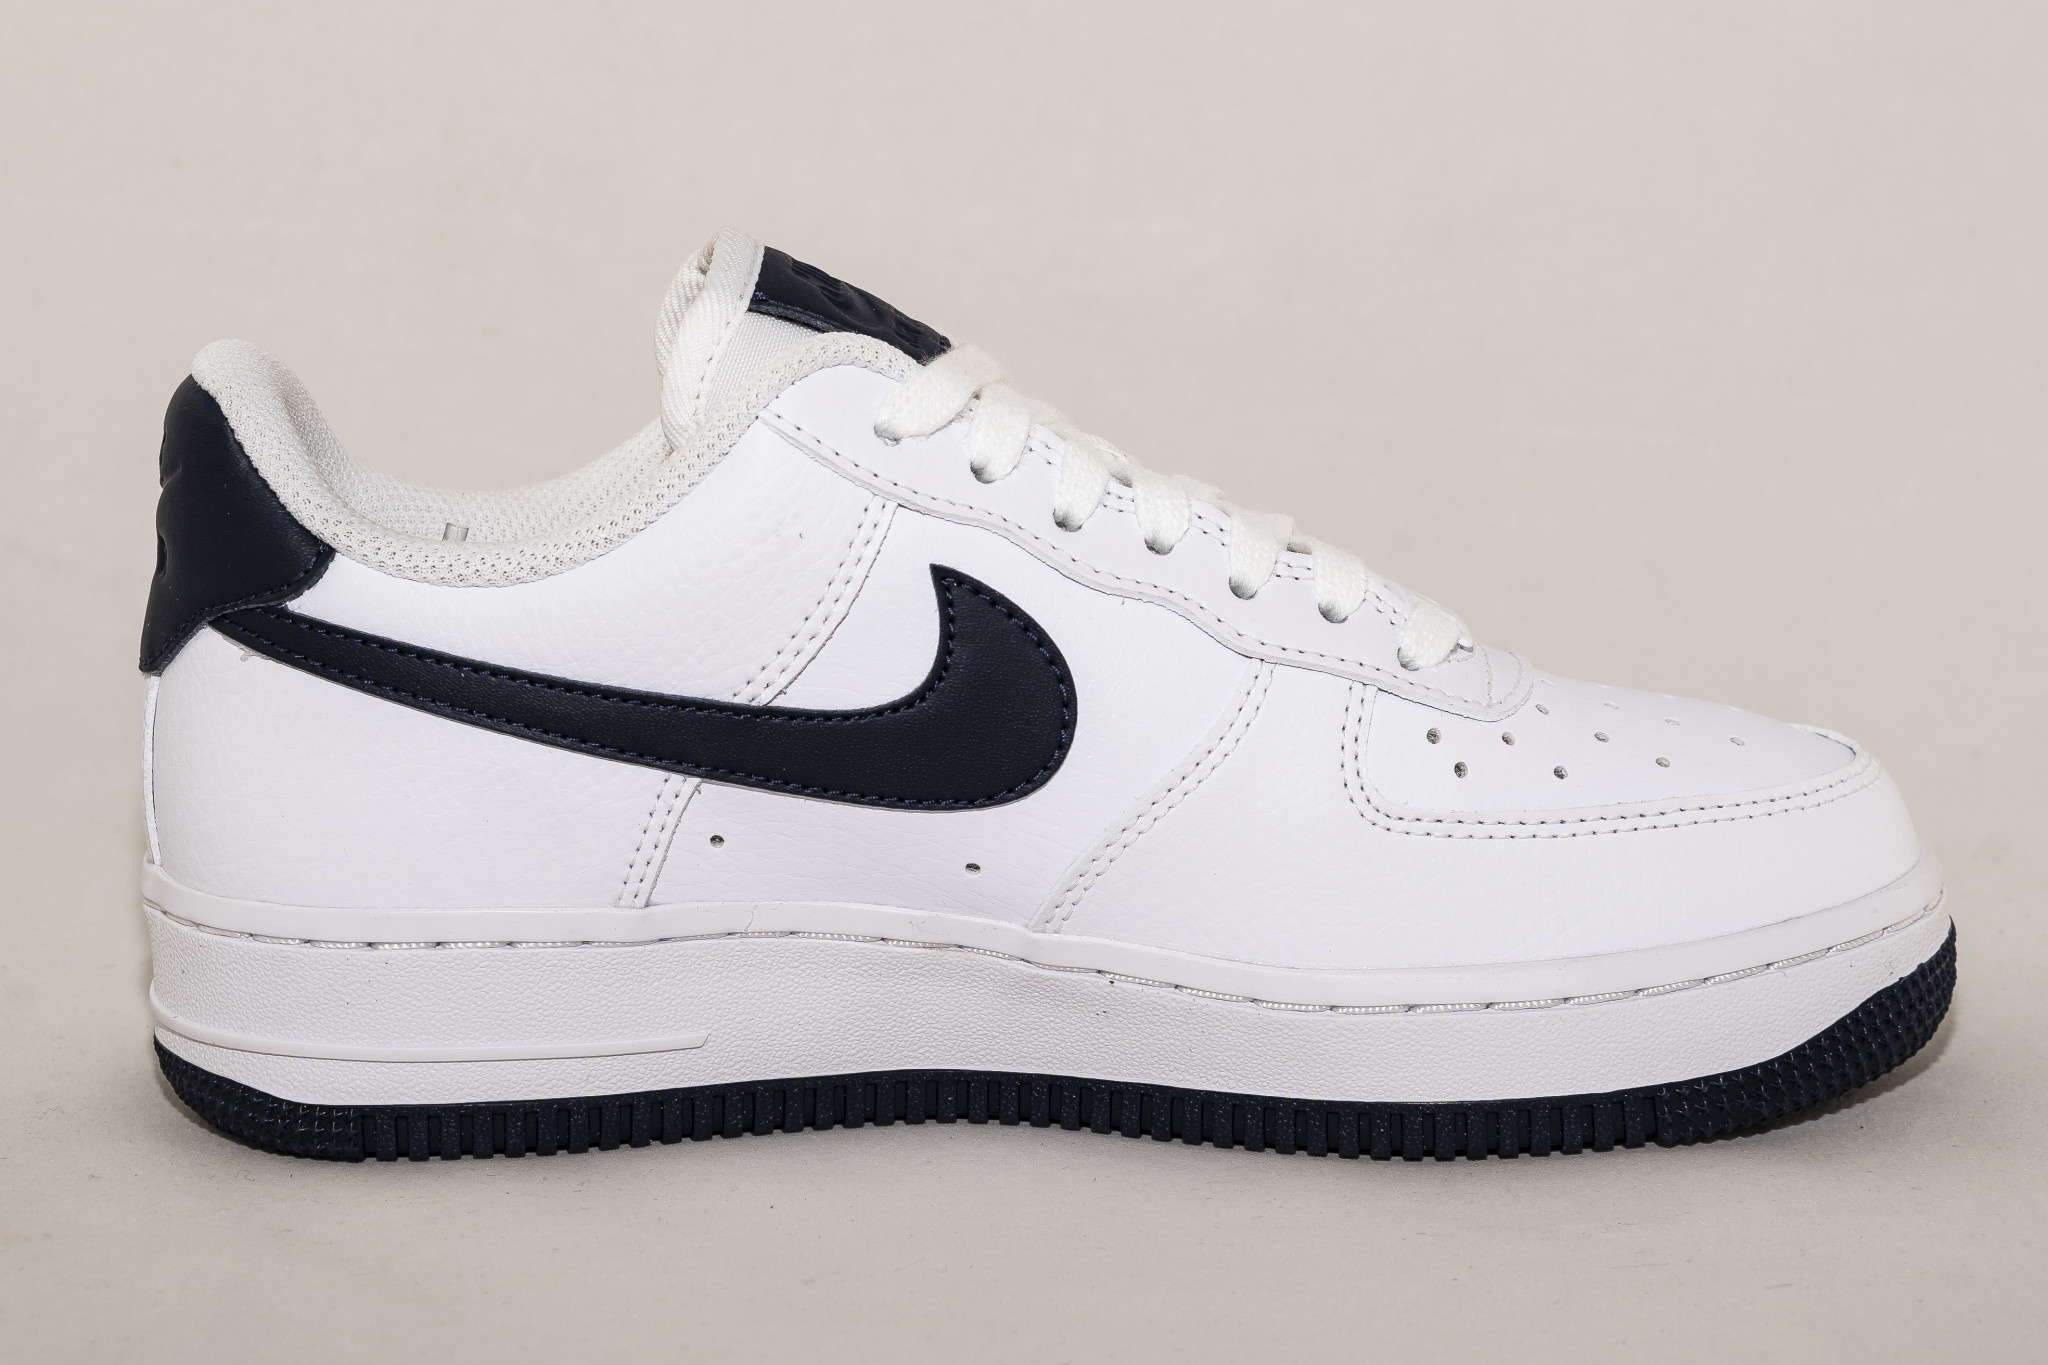 Nike AIR FORCE 1 '07 White/ Obsidian